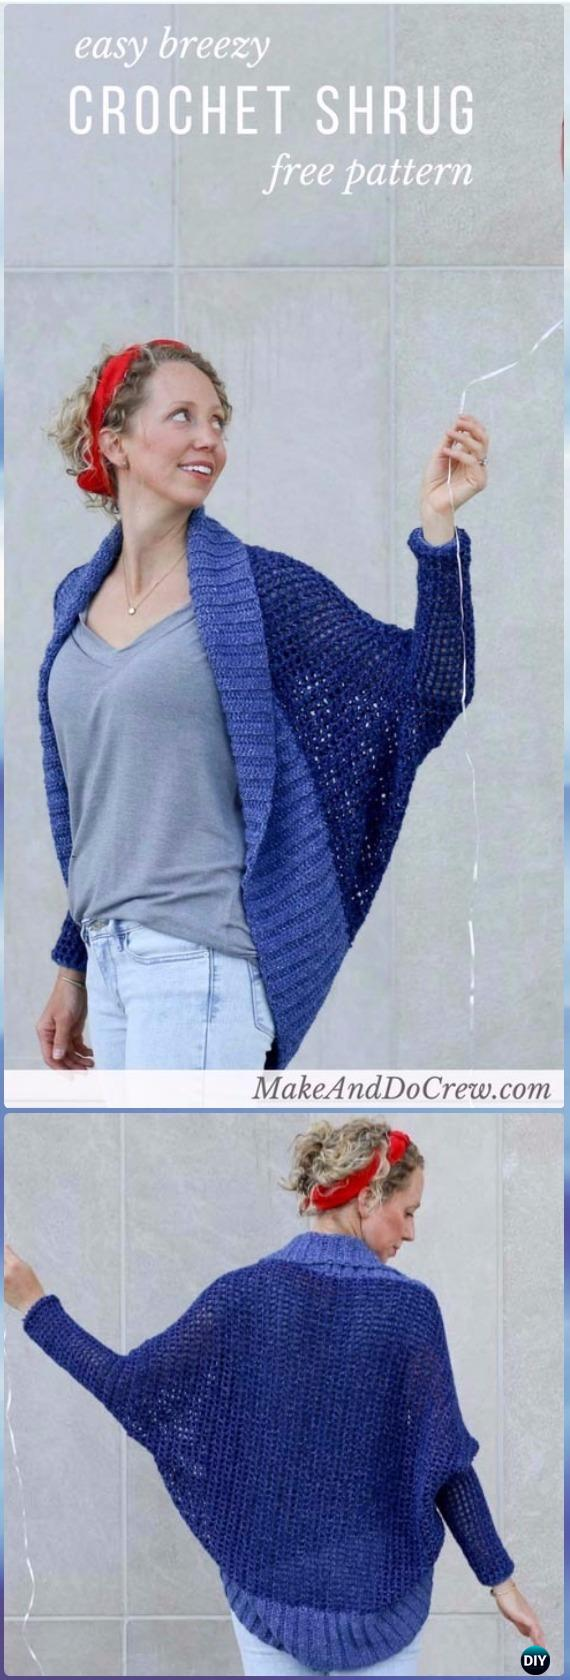 Easy Crochet Lightweight Shrug Free Pattern - Crochet Women Shrug Cardigan Free Pattern